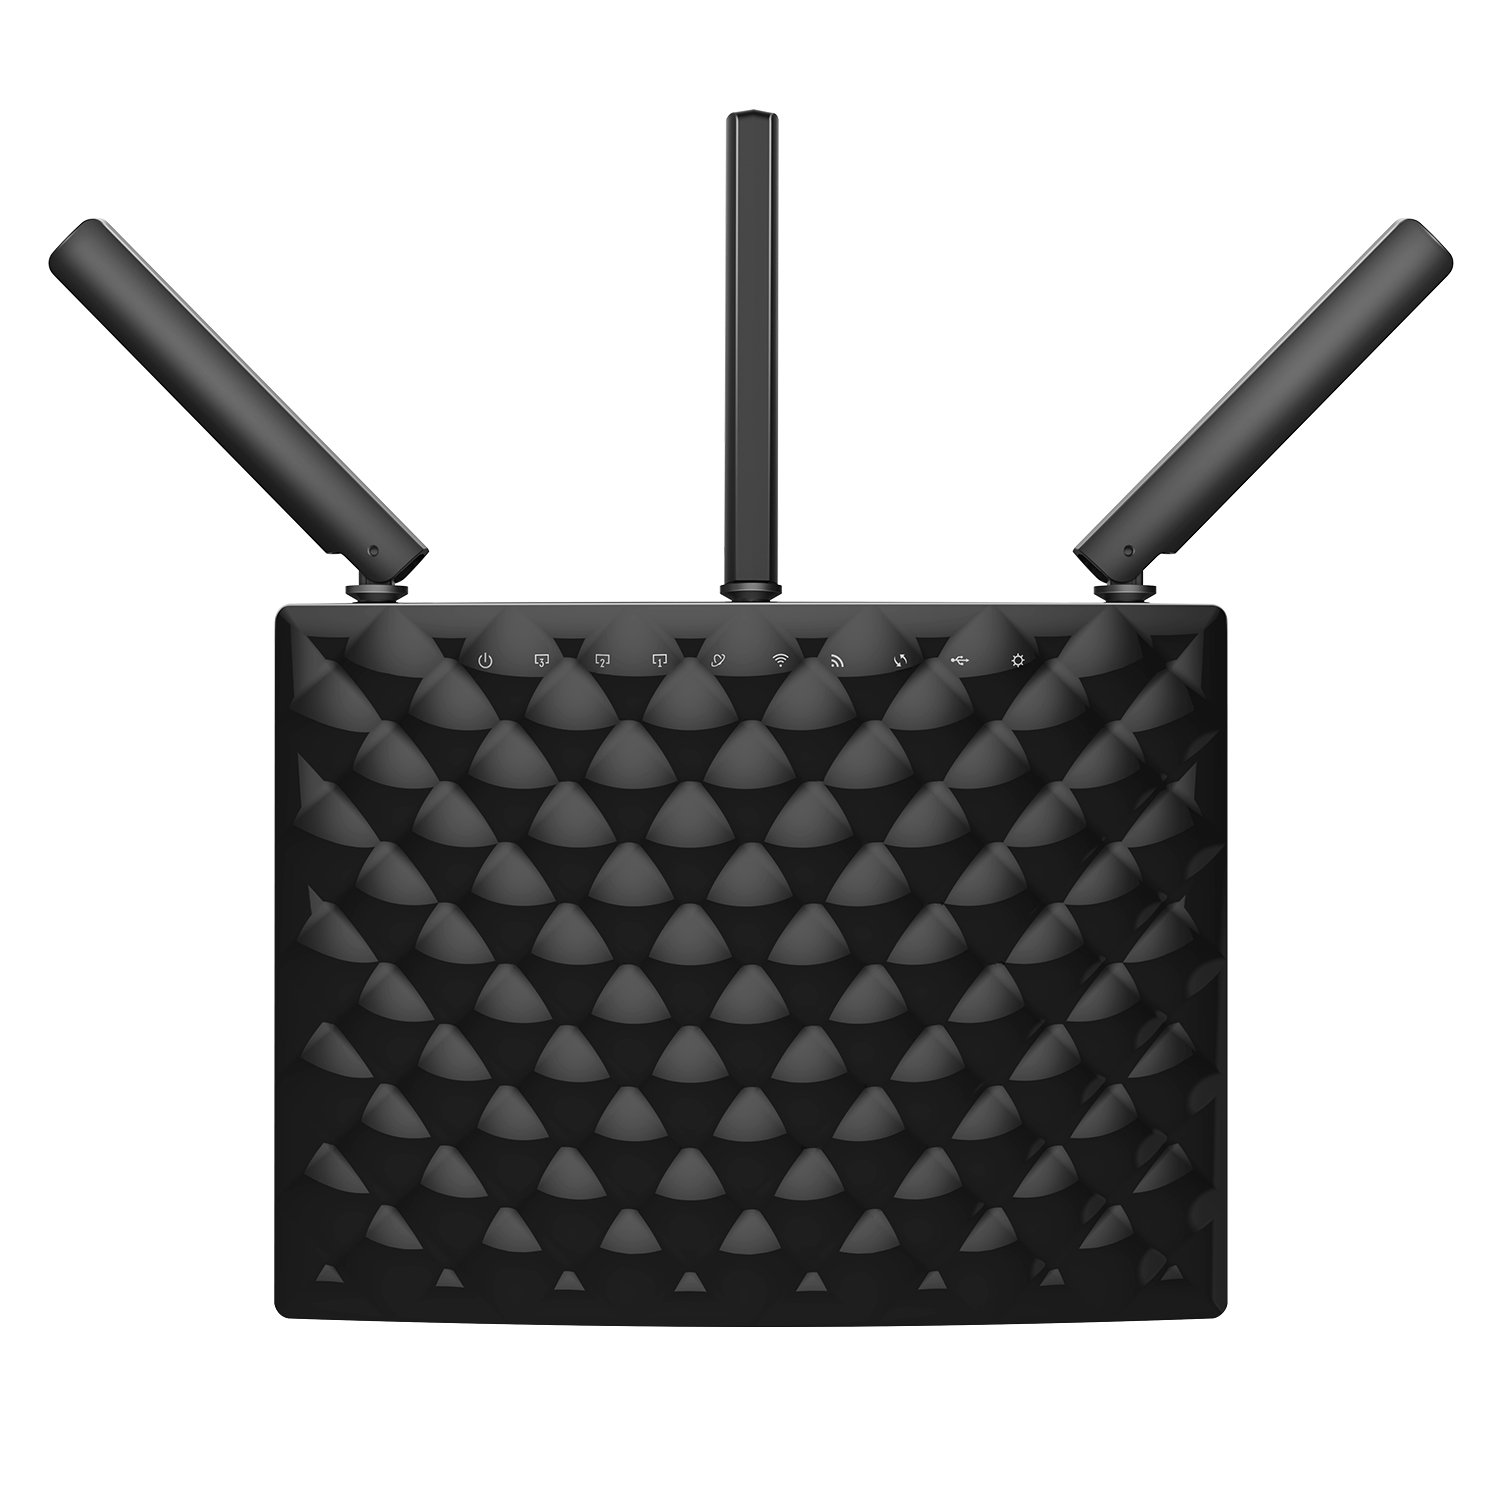 Tenda AC15 AC1900 Wireless Wi-Fi Gigabit Smart Router, Black by Tenda